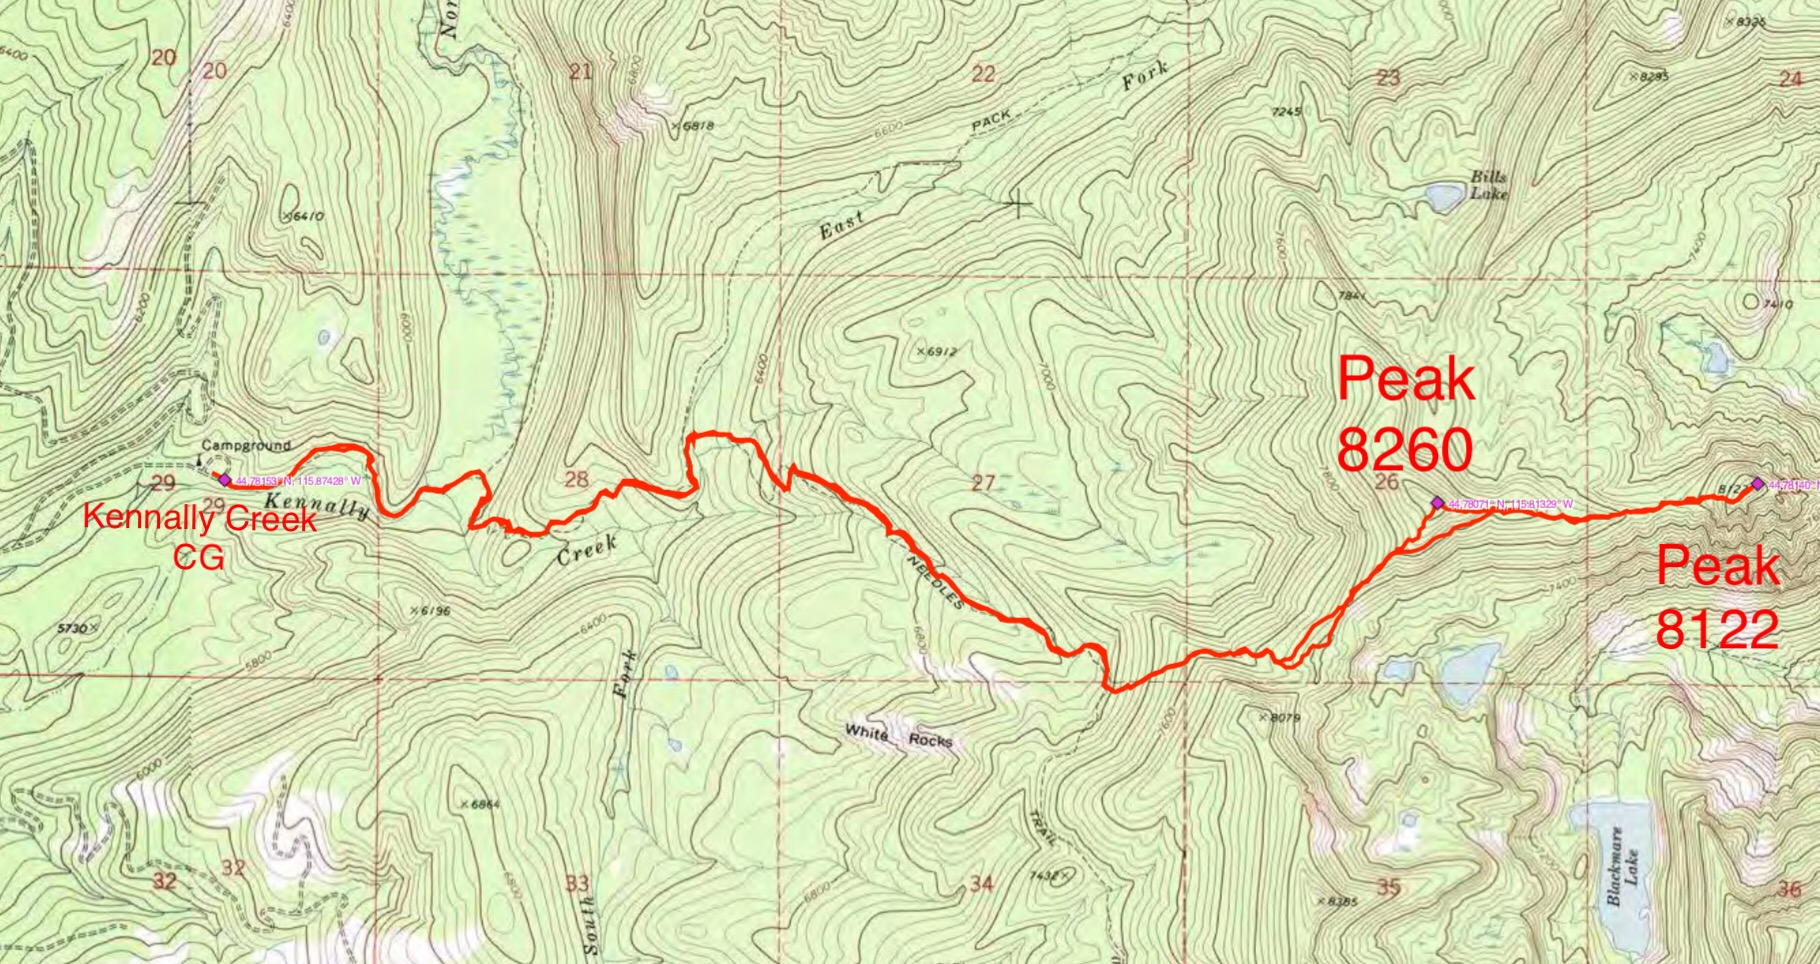 John Platt's GPS track for Peaks 8260 and 8122.